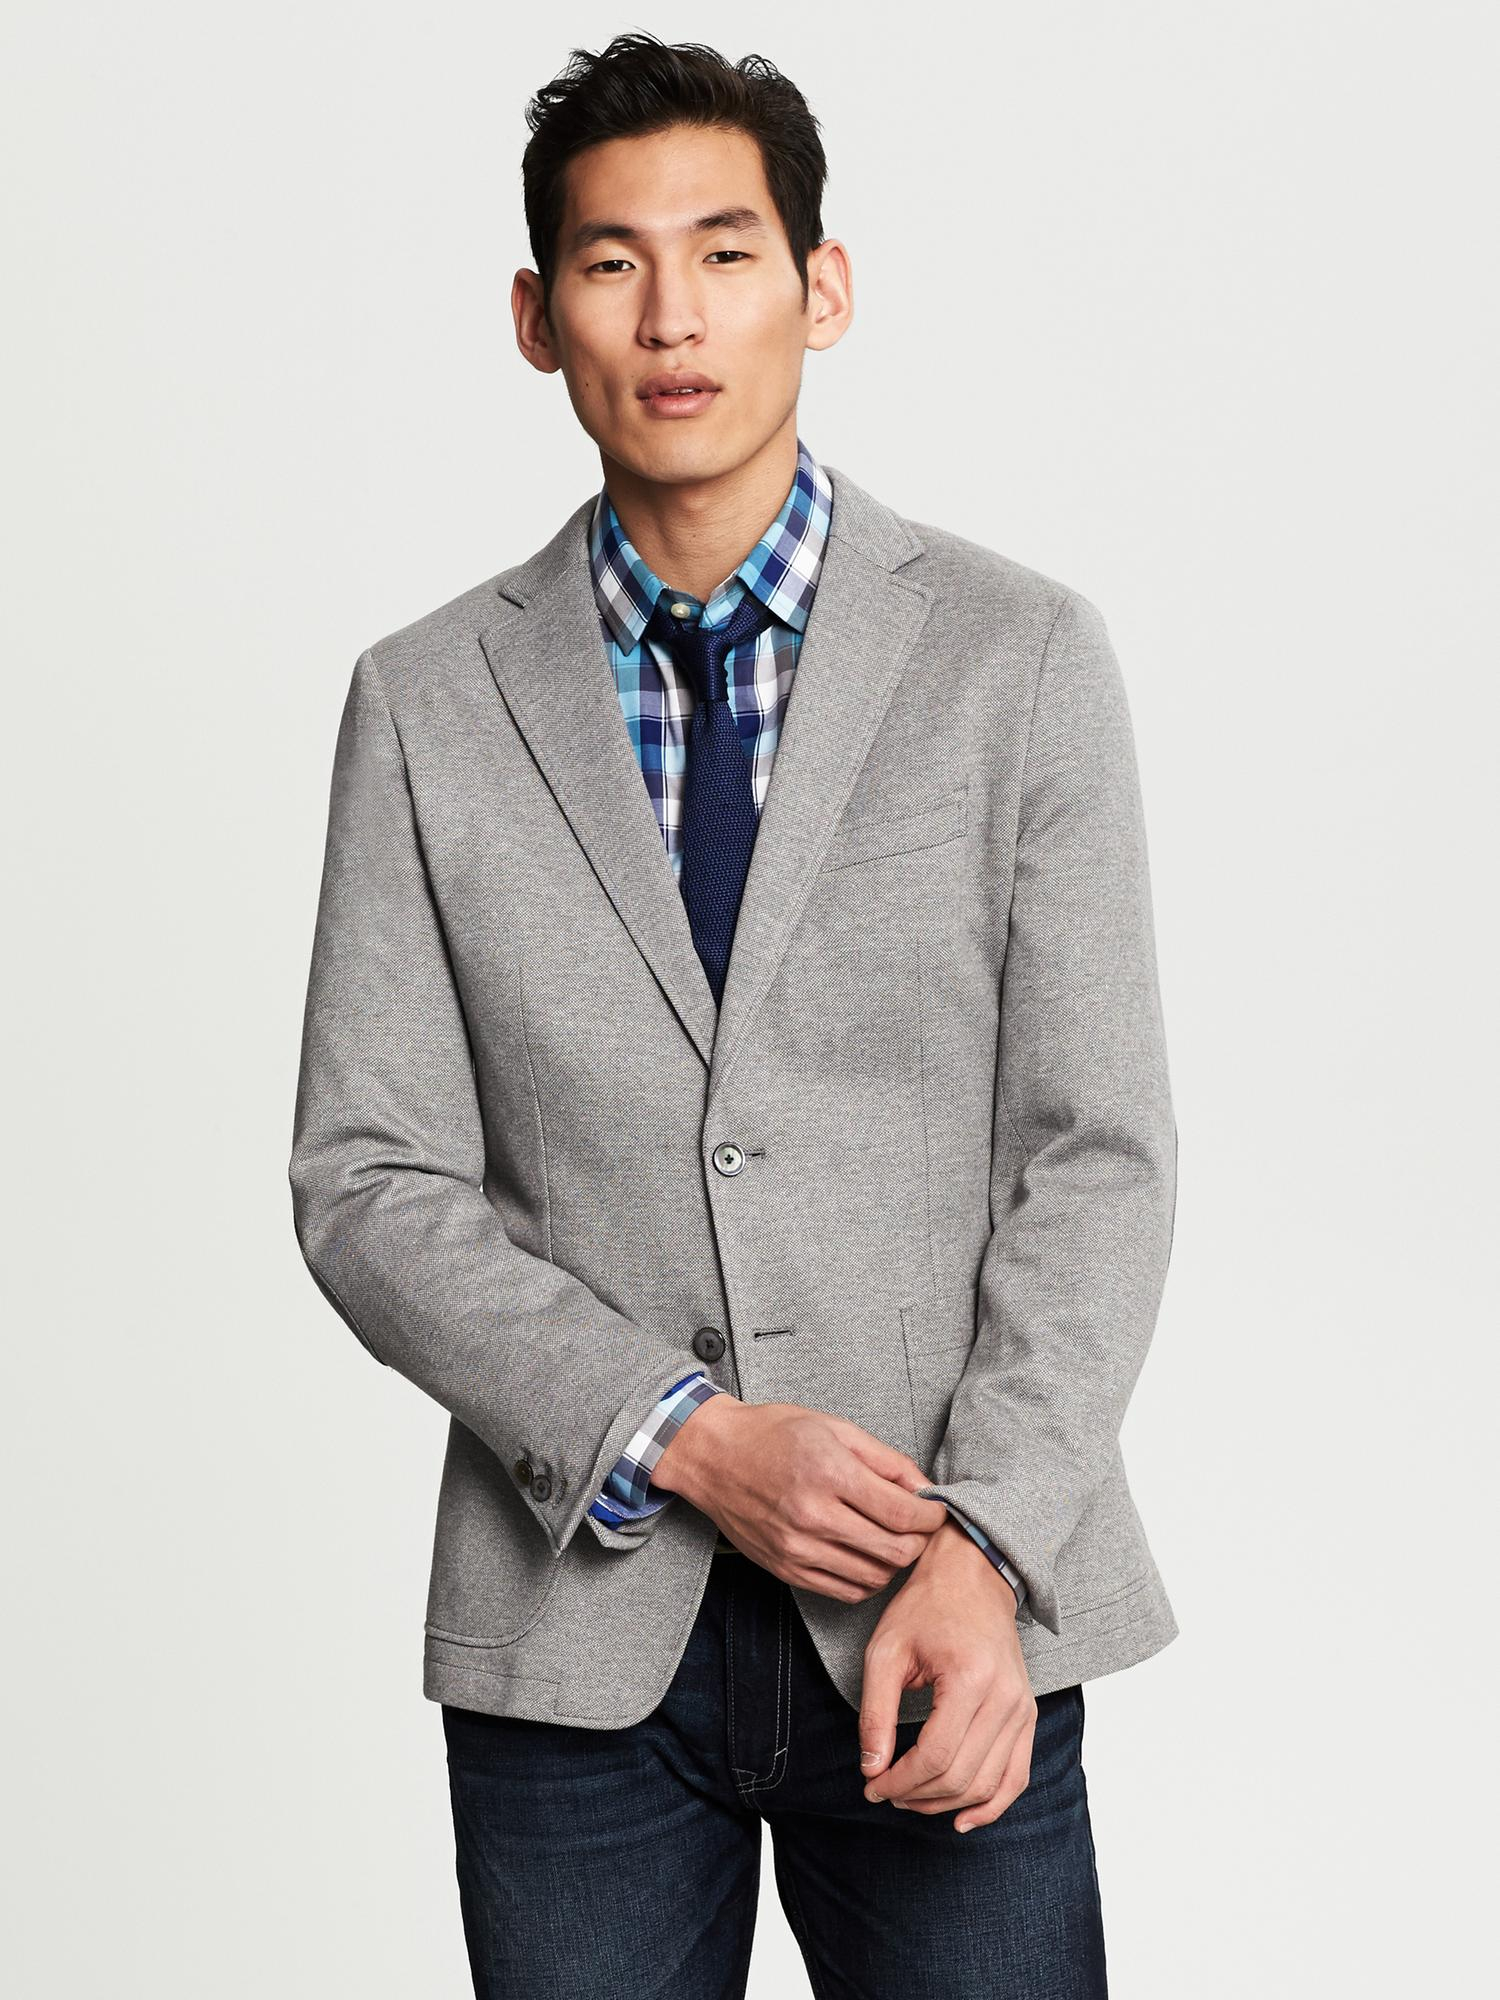 See the men's linen blazer jacket collection from Banana Republic for undeniable sophistication. Every linen blazer for men is created with quality material to give you a sleek look.